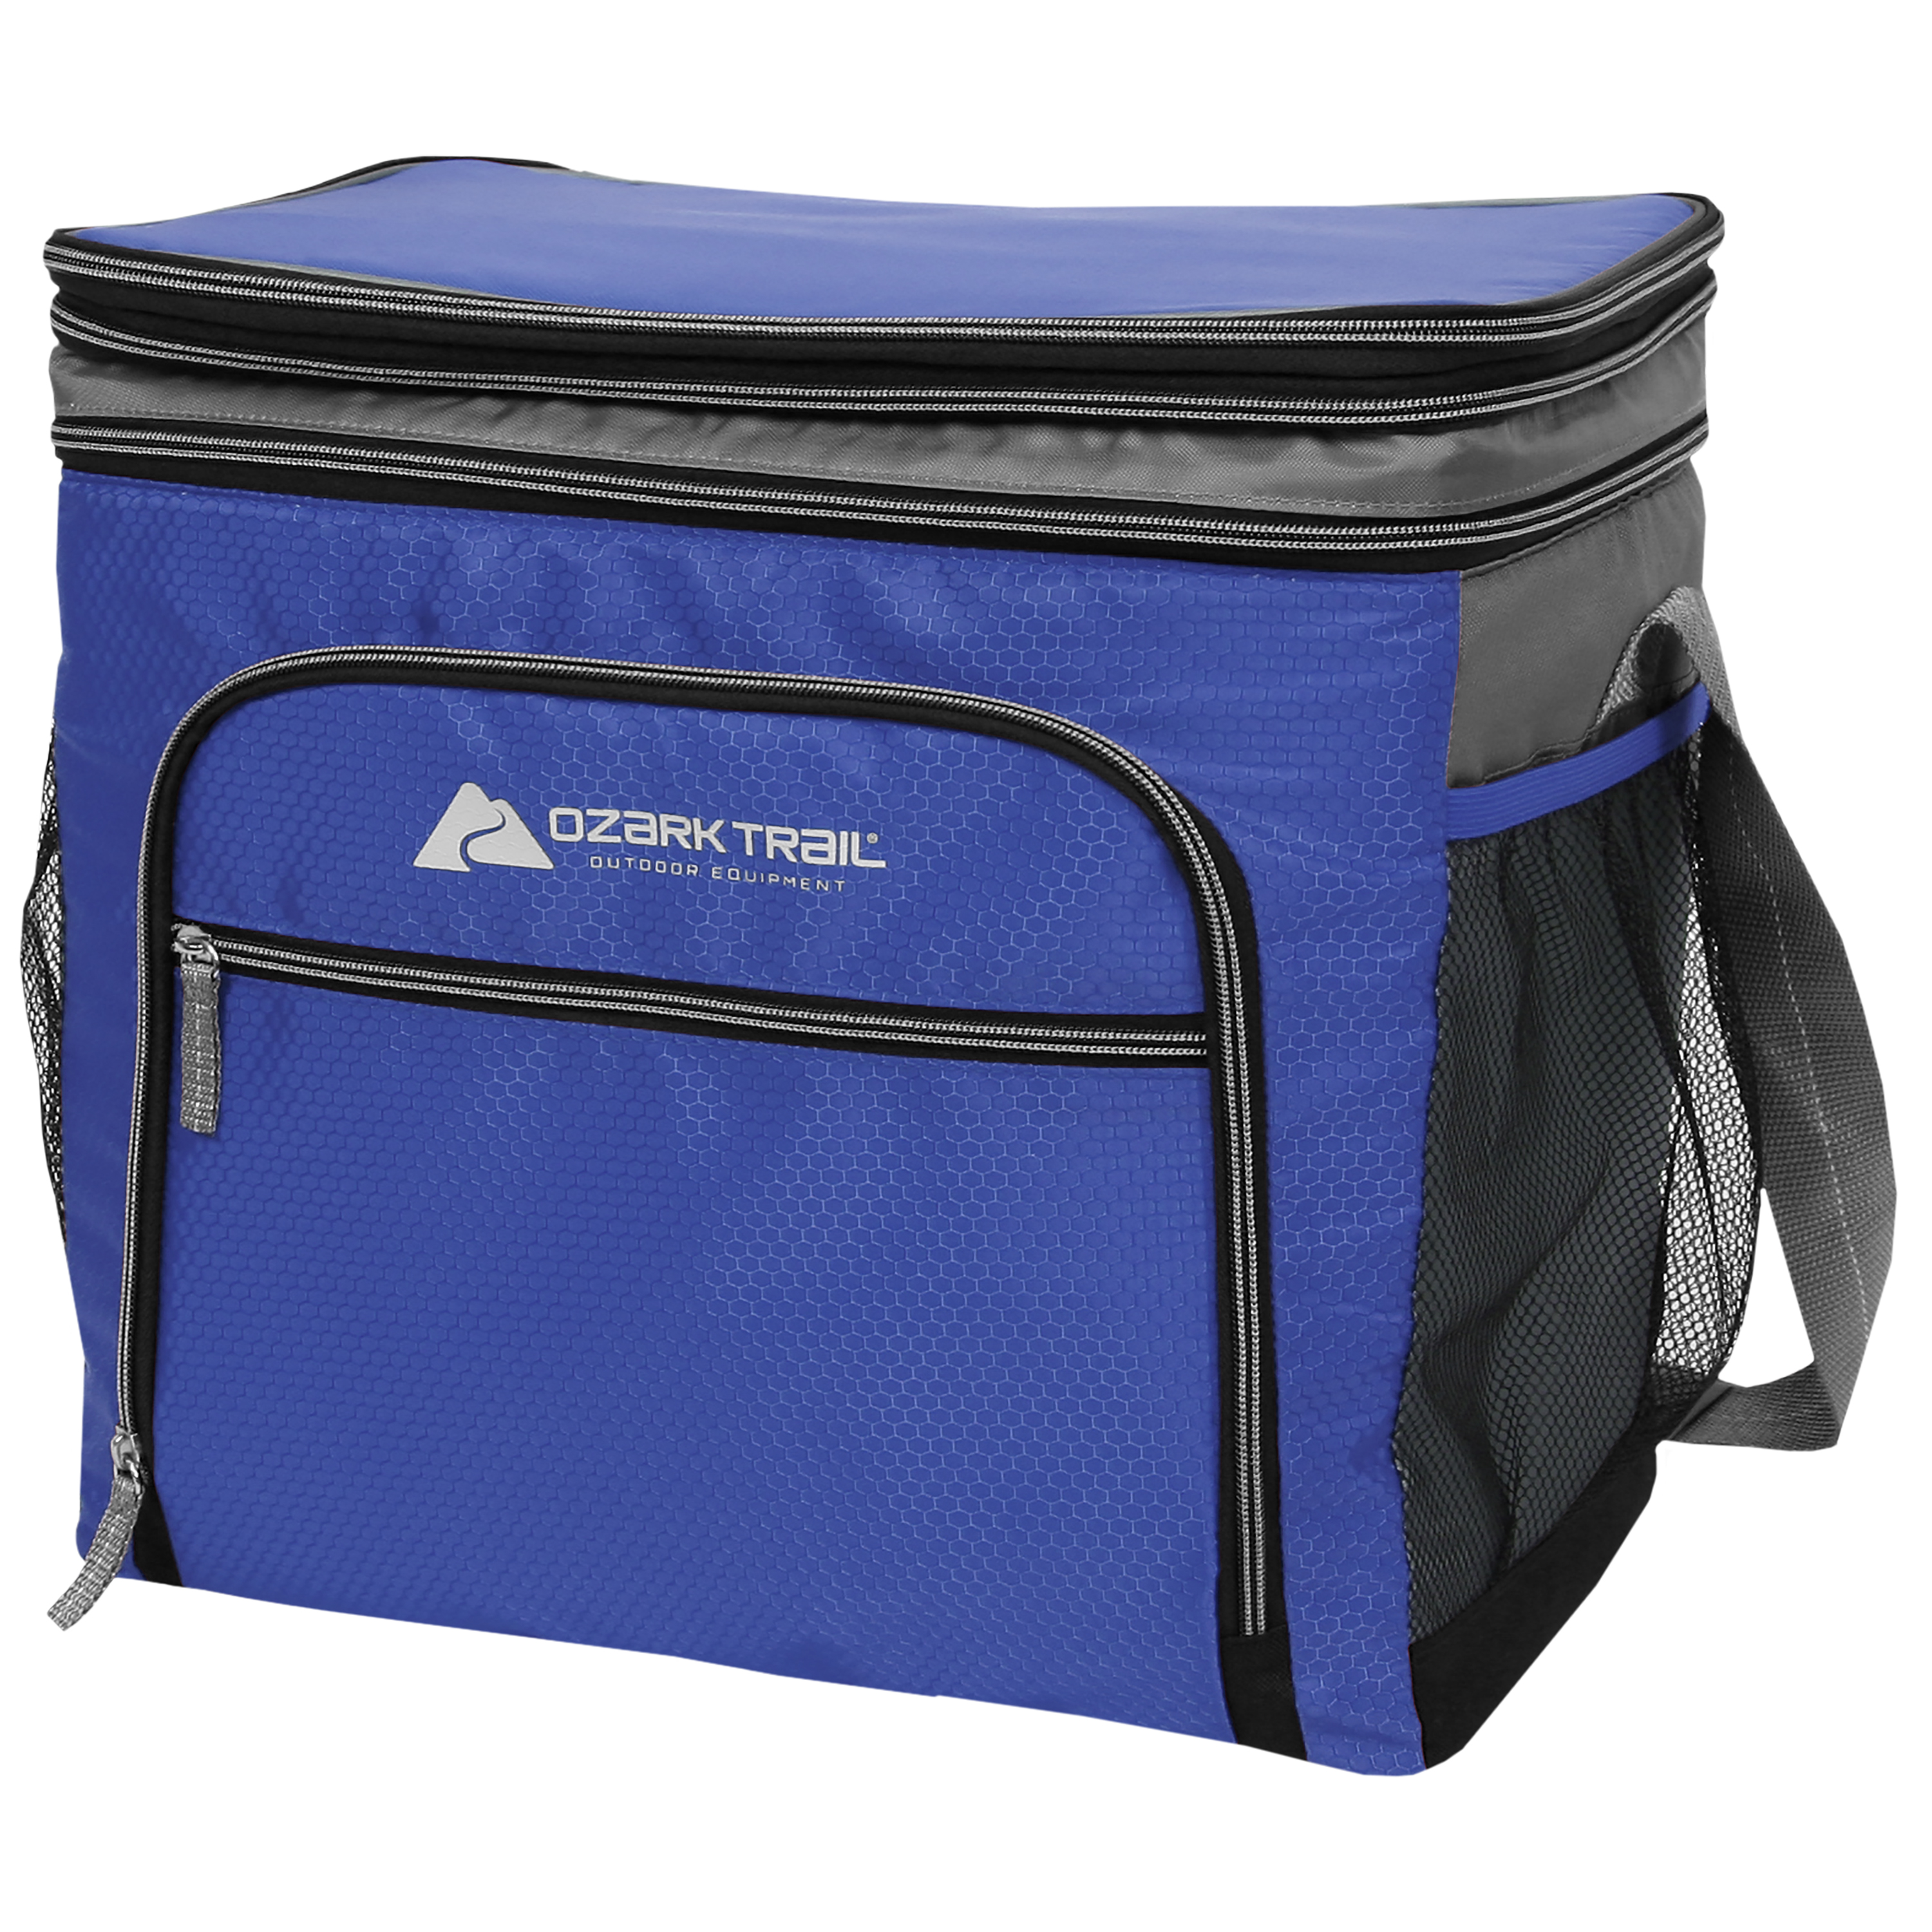 Ozark Trail 24-Can Cooler with Removable Hardliner